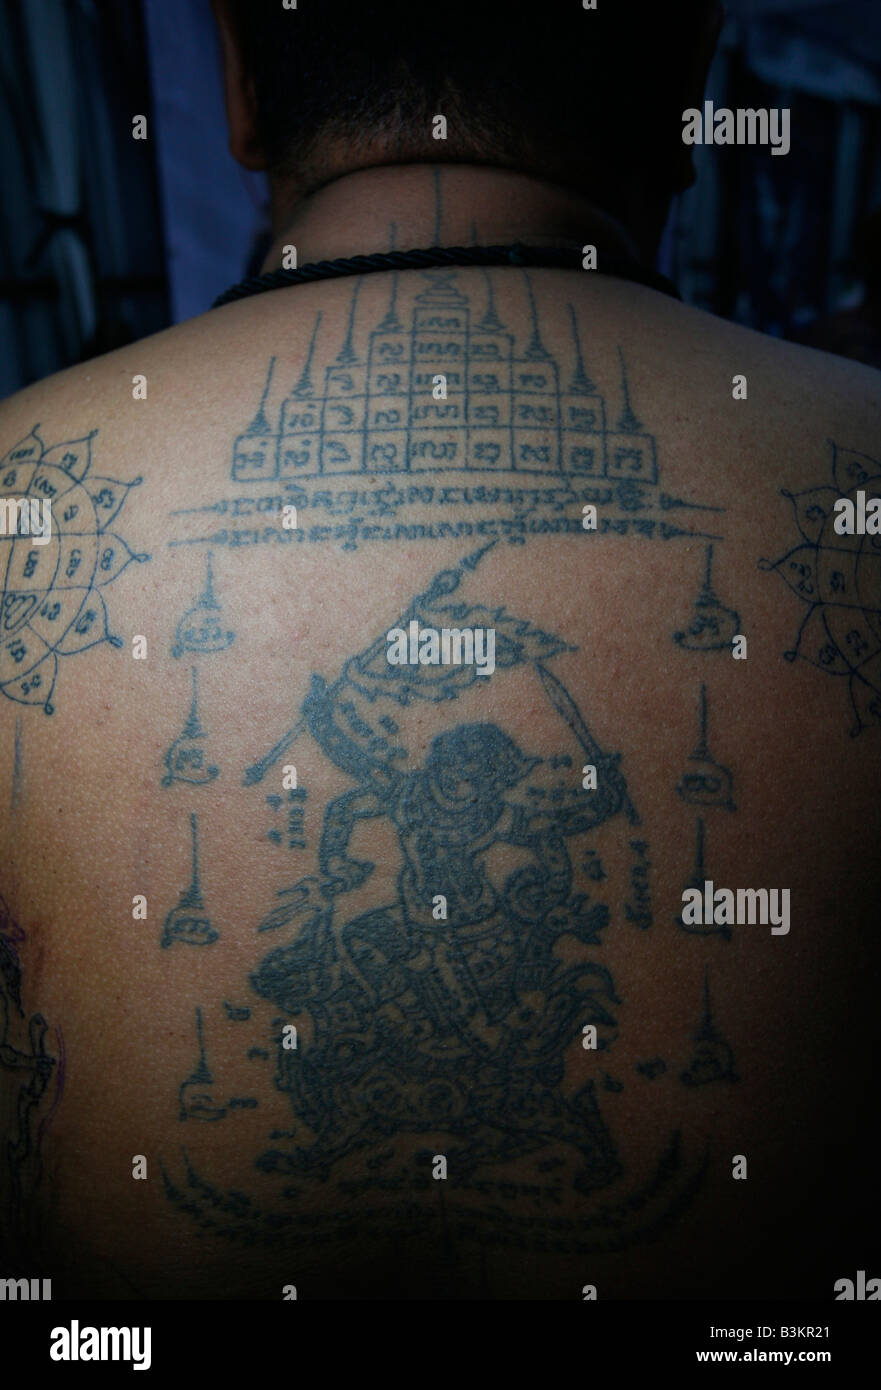 Religious Symbols Are Tattooed On A Mans Back At The International